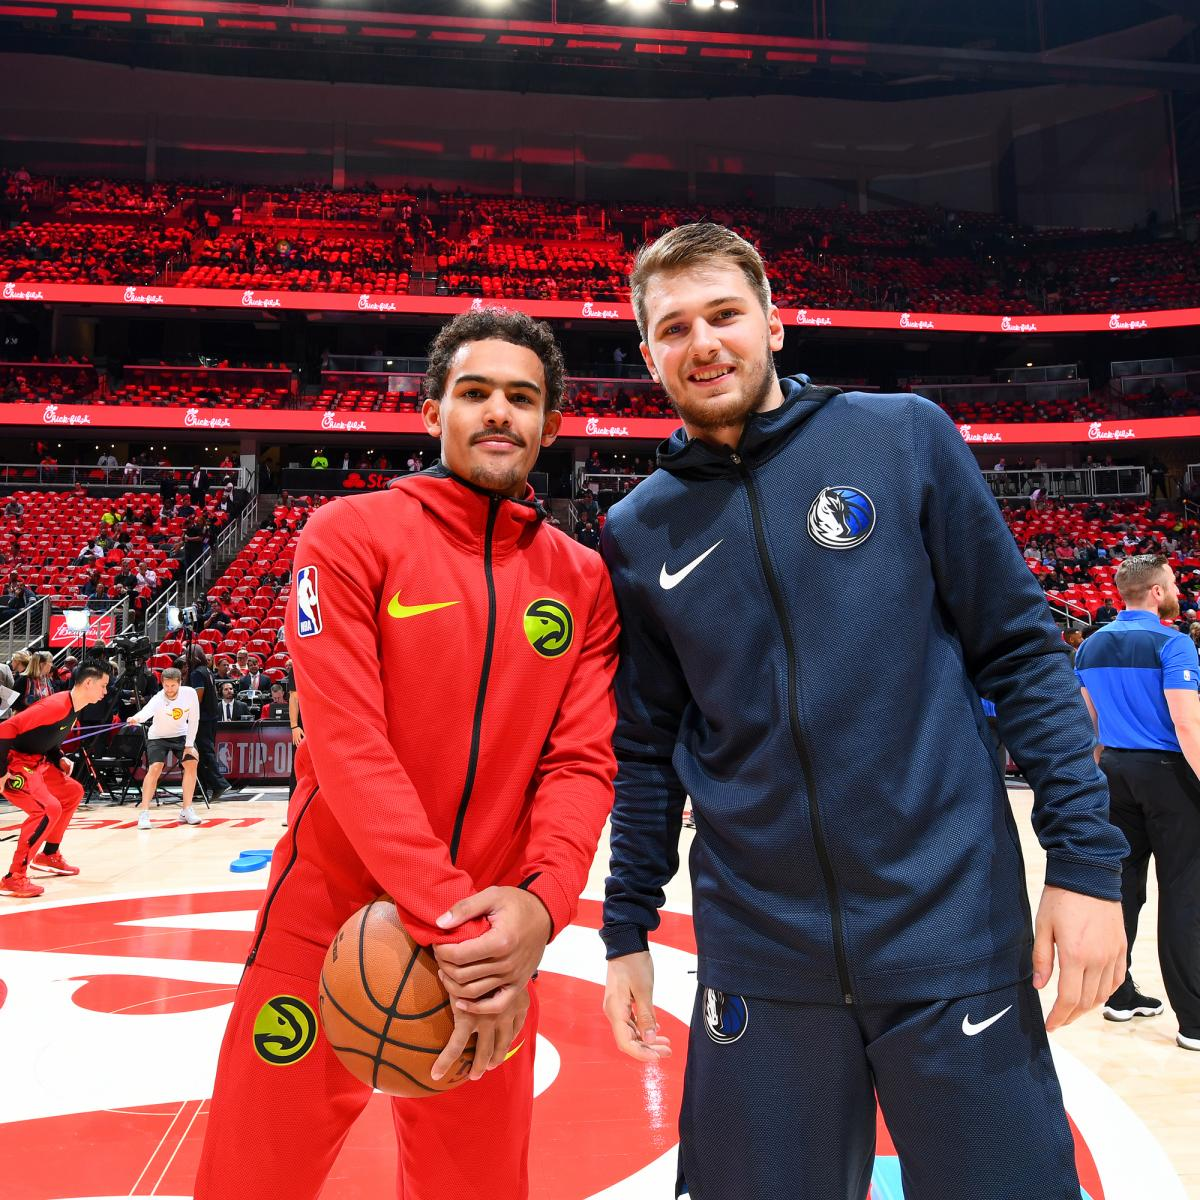 Nba Rookie Award Predictions For 2018 19 Season: Everyone Thought Luka Doncic Was NBA's Best Rookie, Then